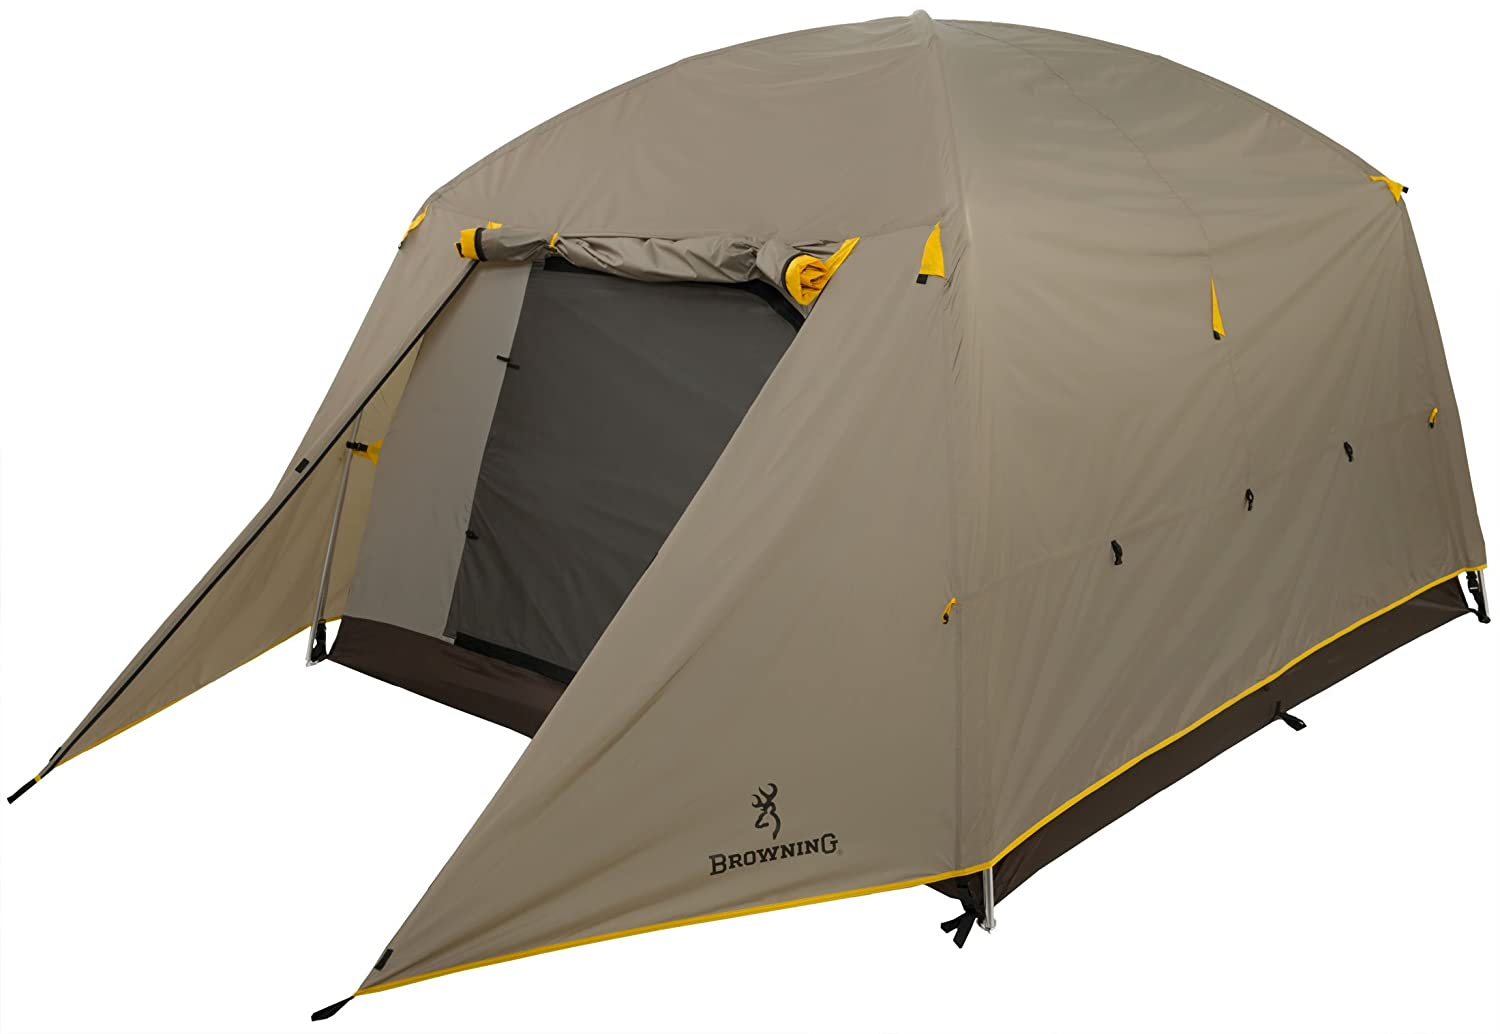 Amazon.com  Browning C&ing Glacier 4-Person Tent  Expedition Tents  Sports u0026 Outdoors  sc 1 st  Amazon.com & Amazon.com : Browning Camping Glacier 4-Person Tent : Expedition ...